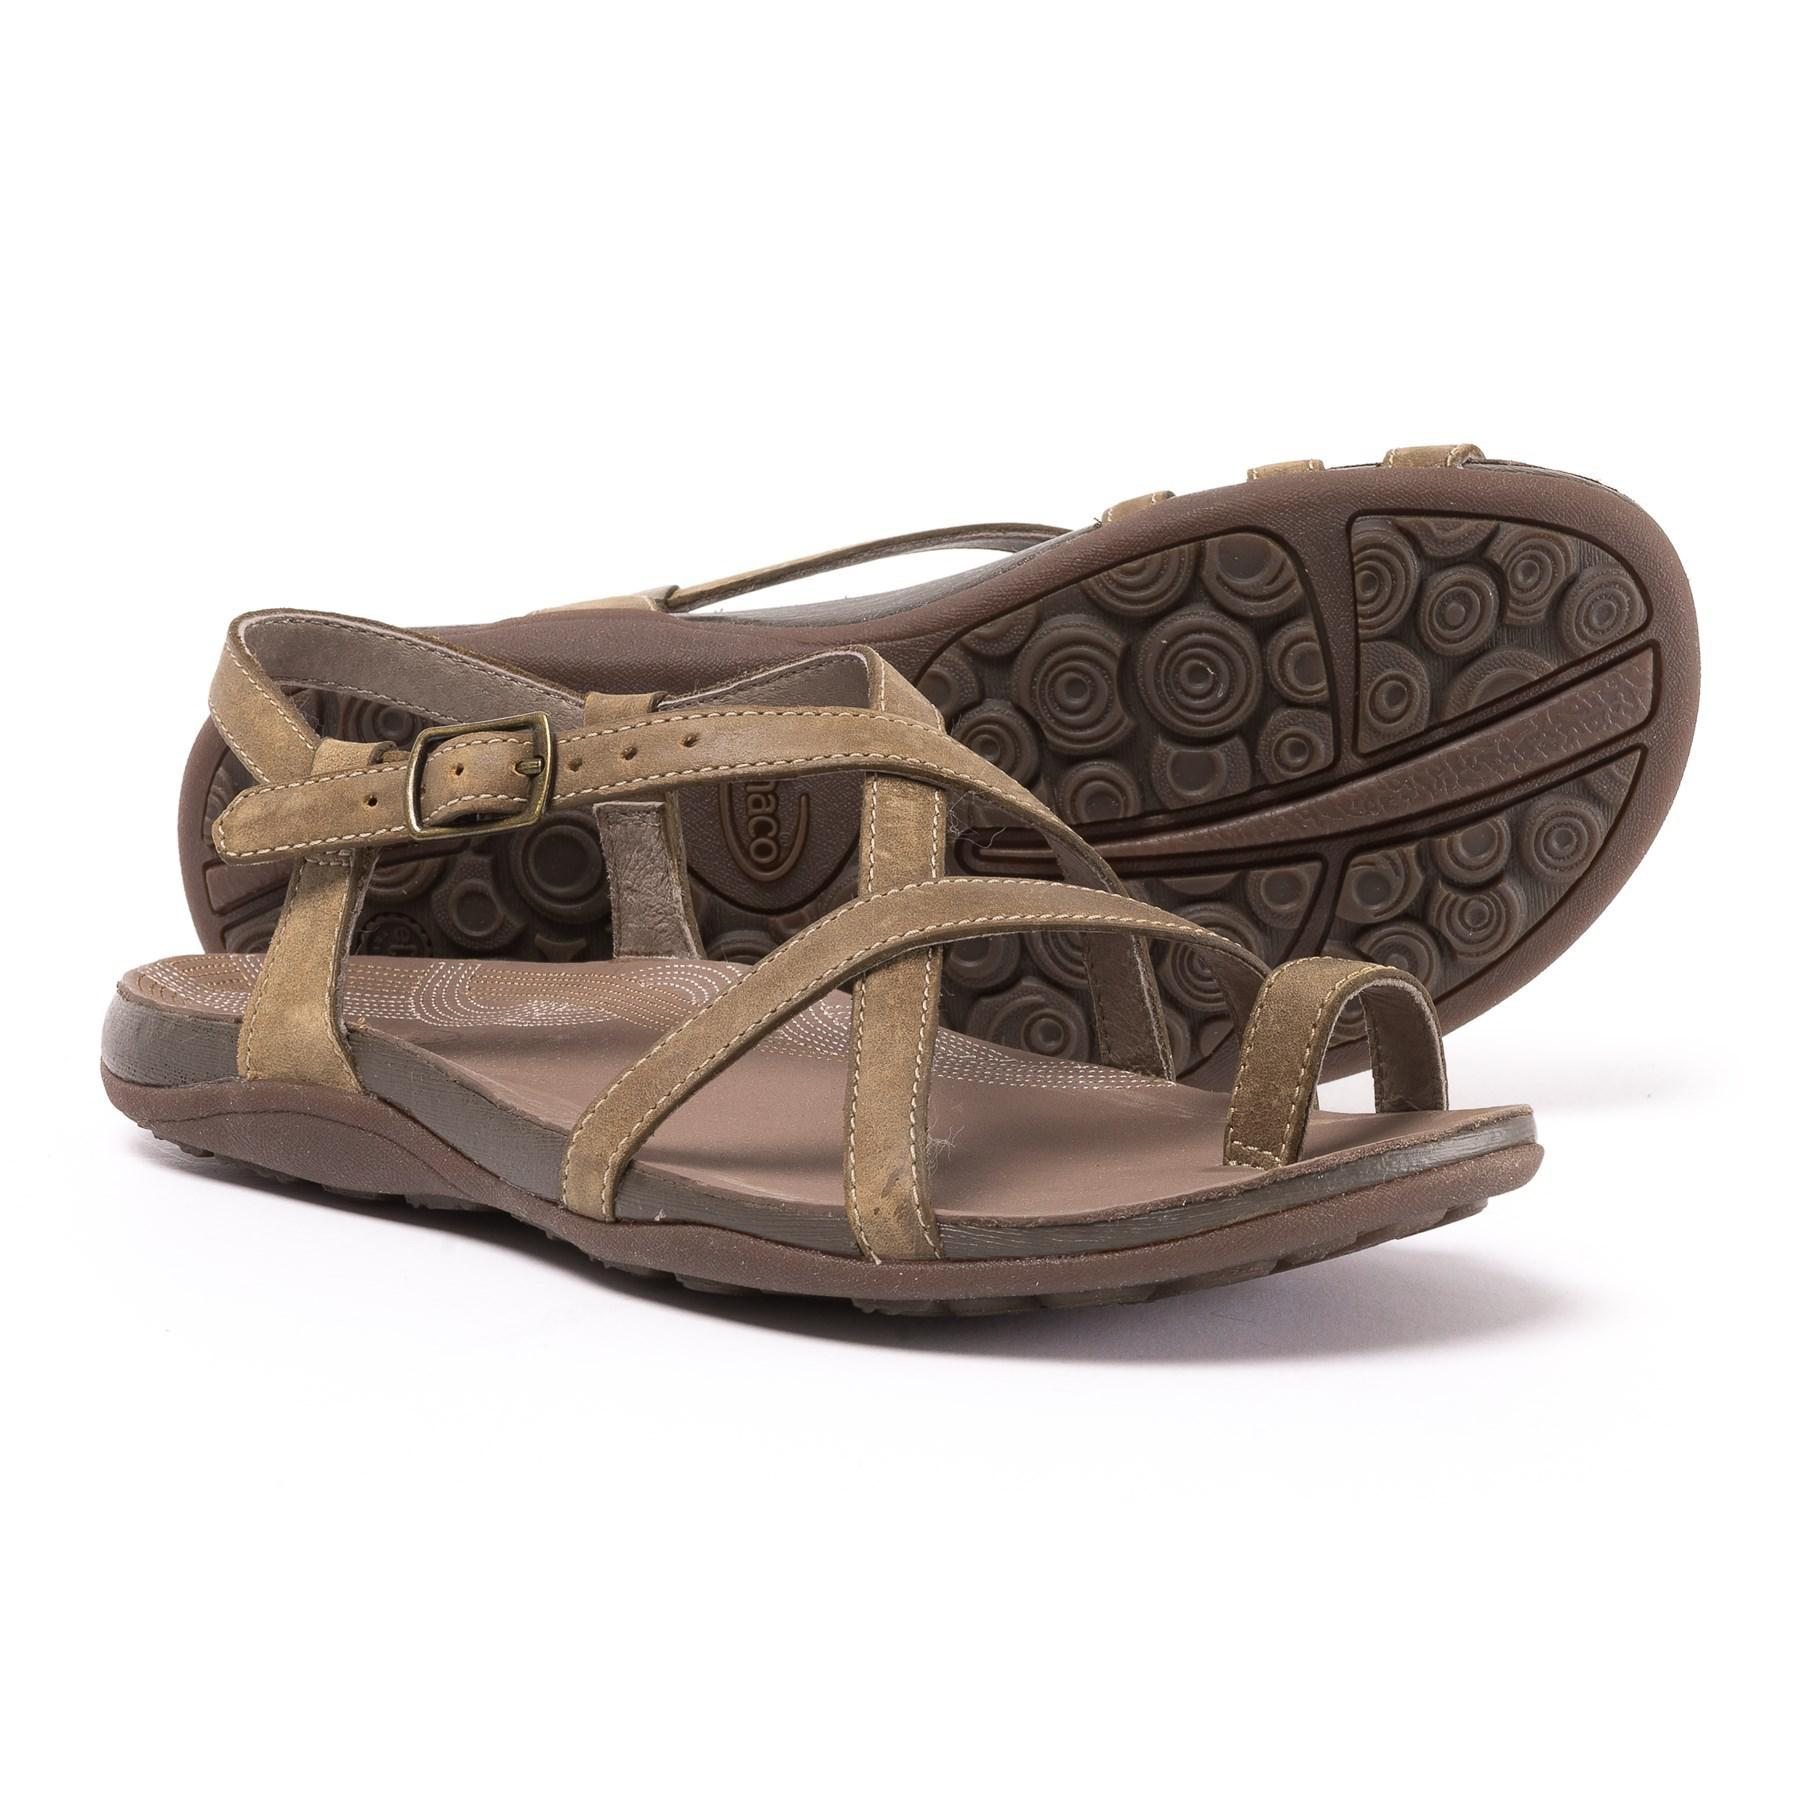 94caa979da4a Lyst - Chaco Dorra Leather Sandals (for Women) in Brown